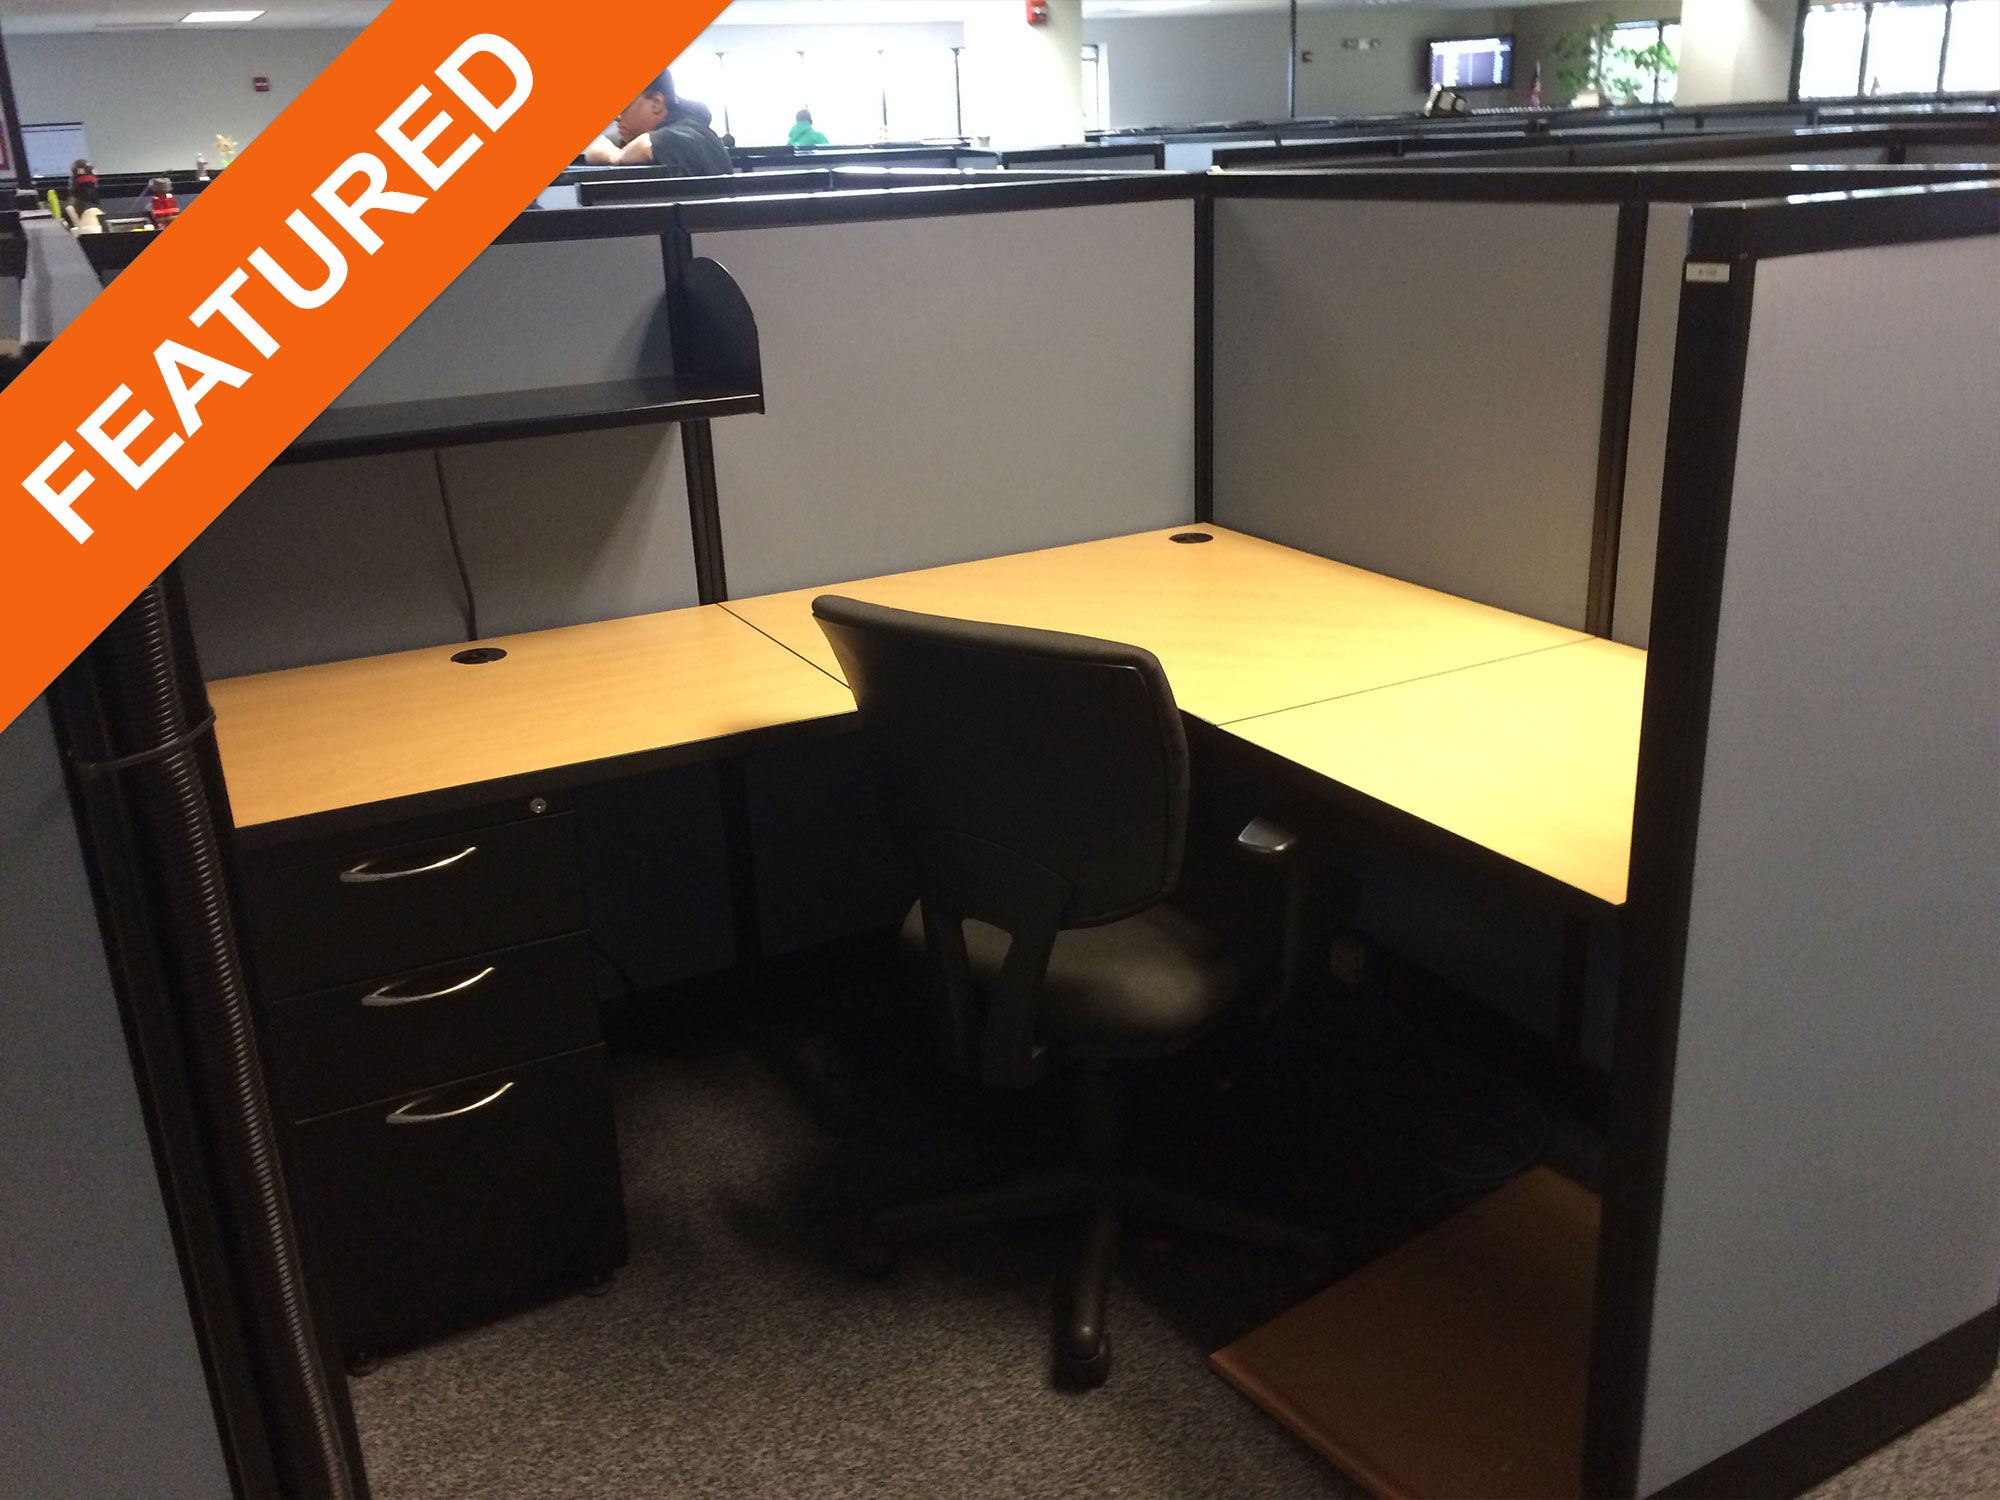 Ais Mwall 5 5 X 5 Used Office Cubicles Used Cubicles